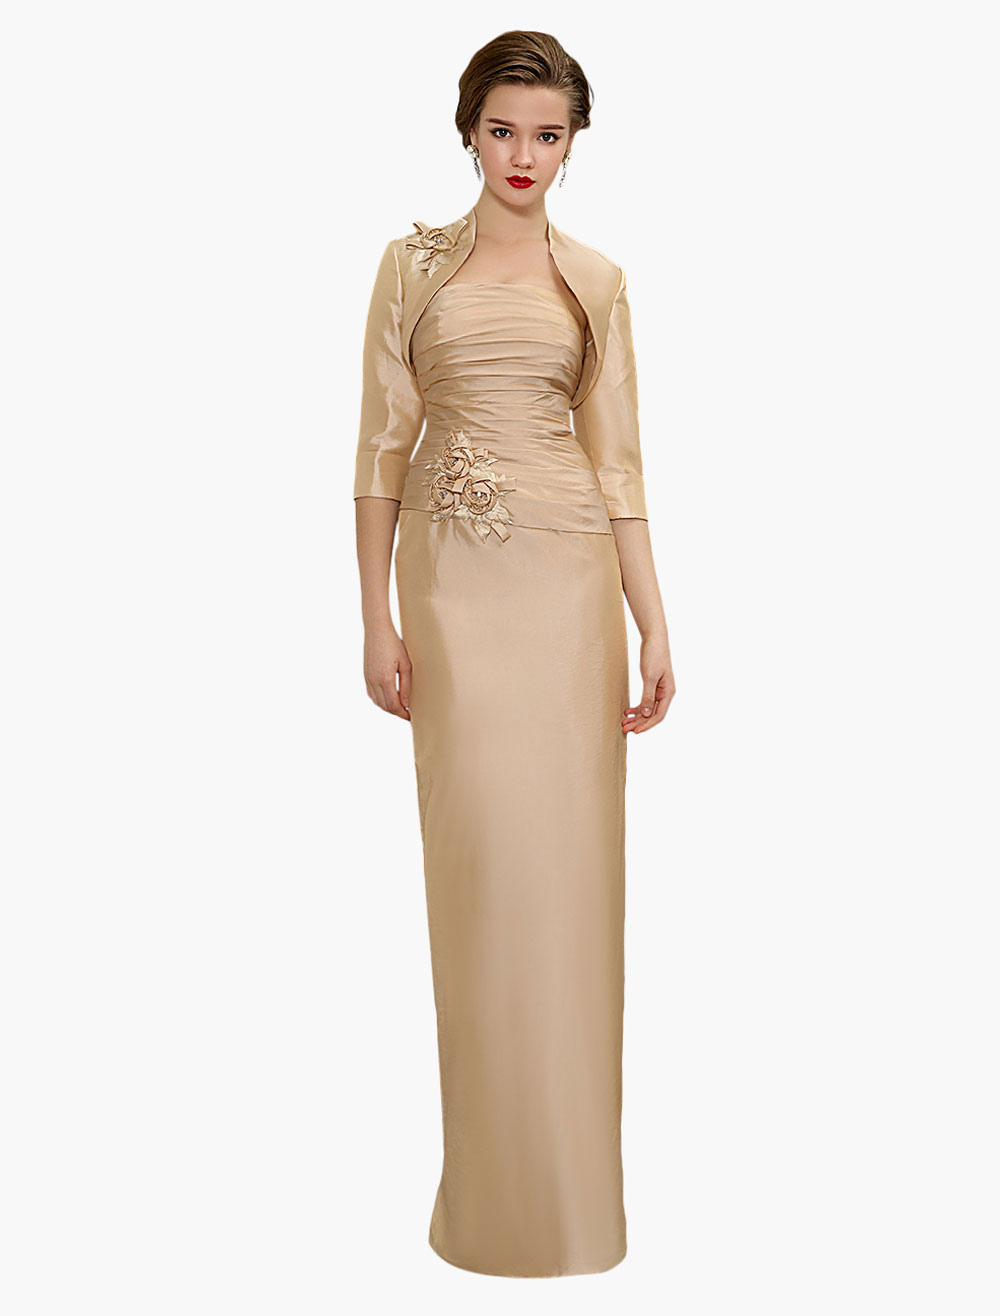 Champagne Taffeta Pleated Floor Length Mother of Bride Dress with Jacket